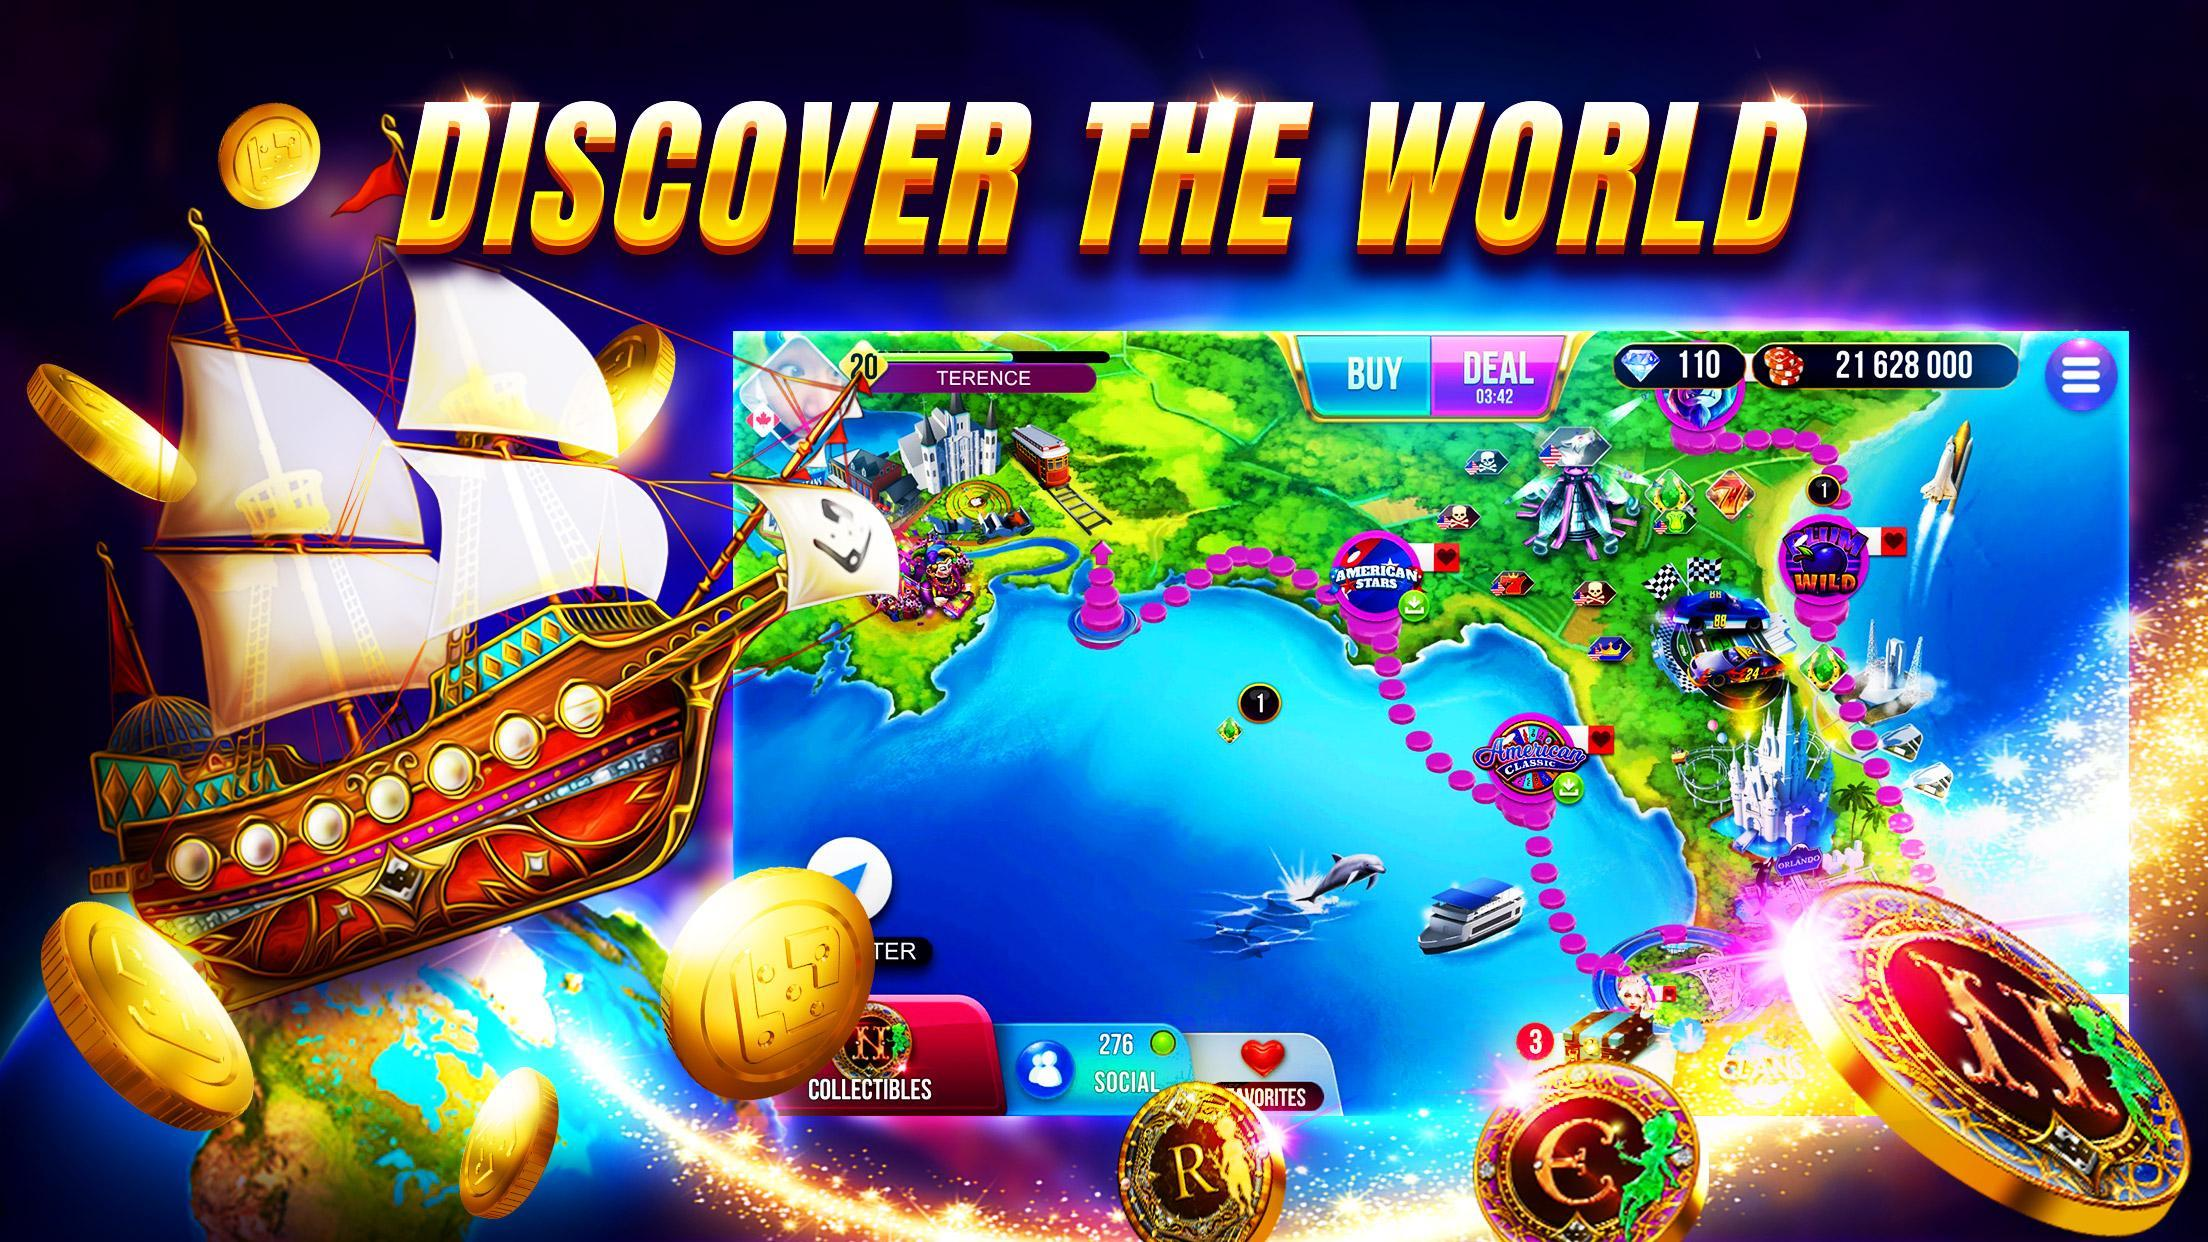 Neverland Casino Slots 2020 - Social Slots Games 2.64.1 Screenshot 6